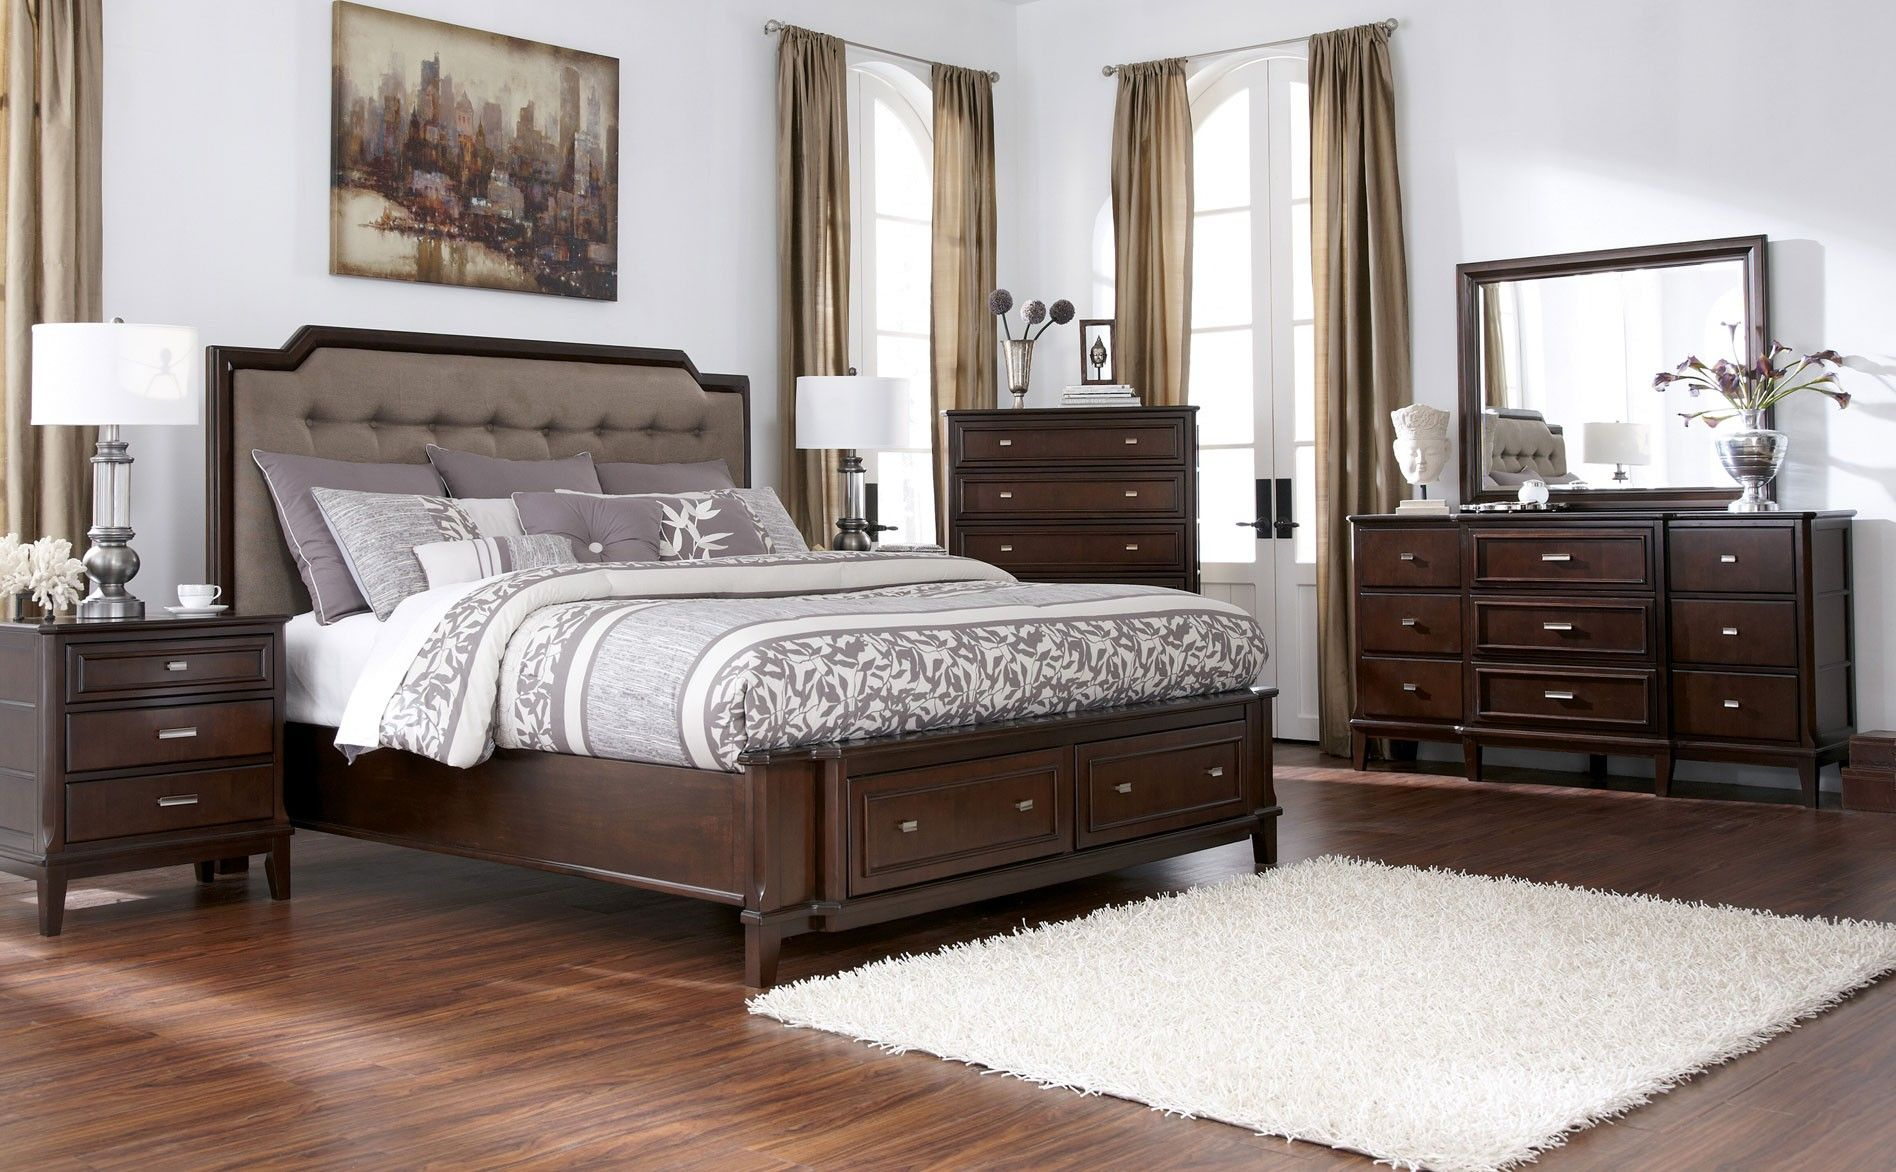 cheap headboard fairbrooks queen king esmarelda complete bedroom store city ashley outlet sale gallery clearance el on room living set mattress me full zelda near gorgeous estate erinmagnin broadway poster miami furniture headboards dorado under sets